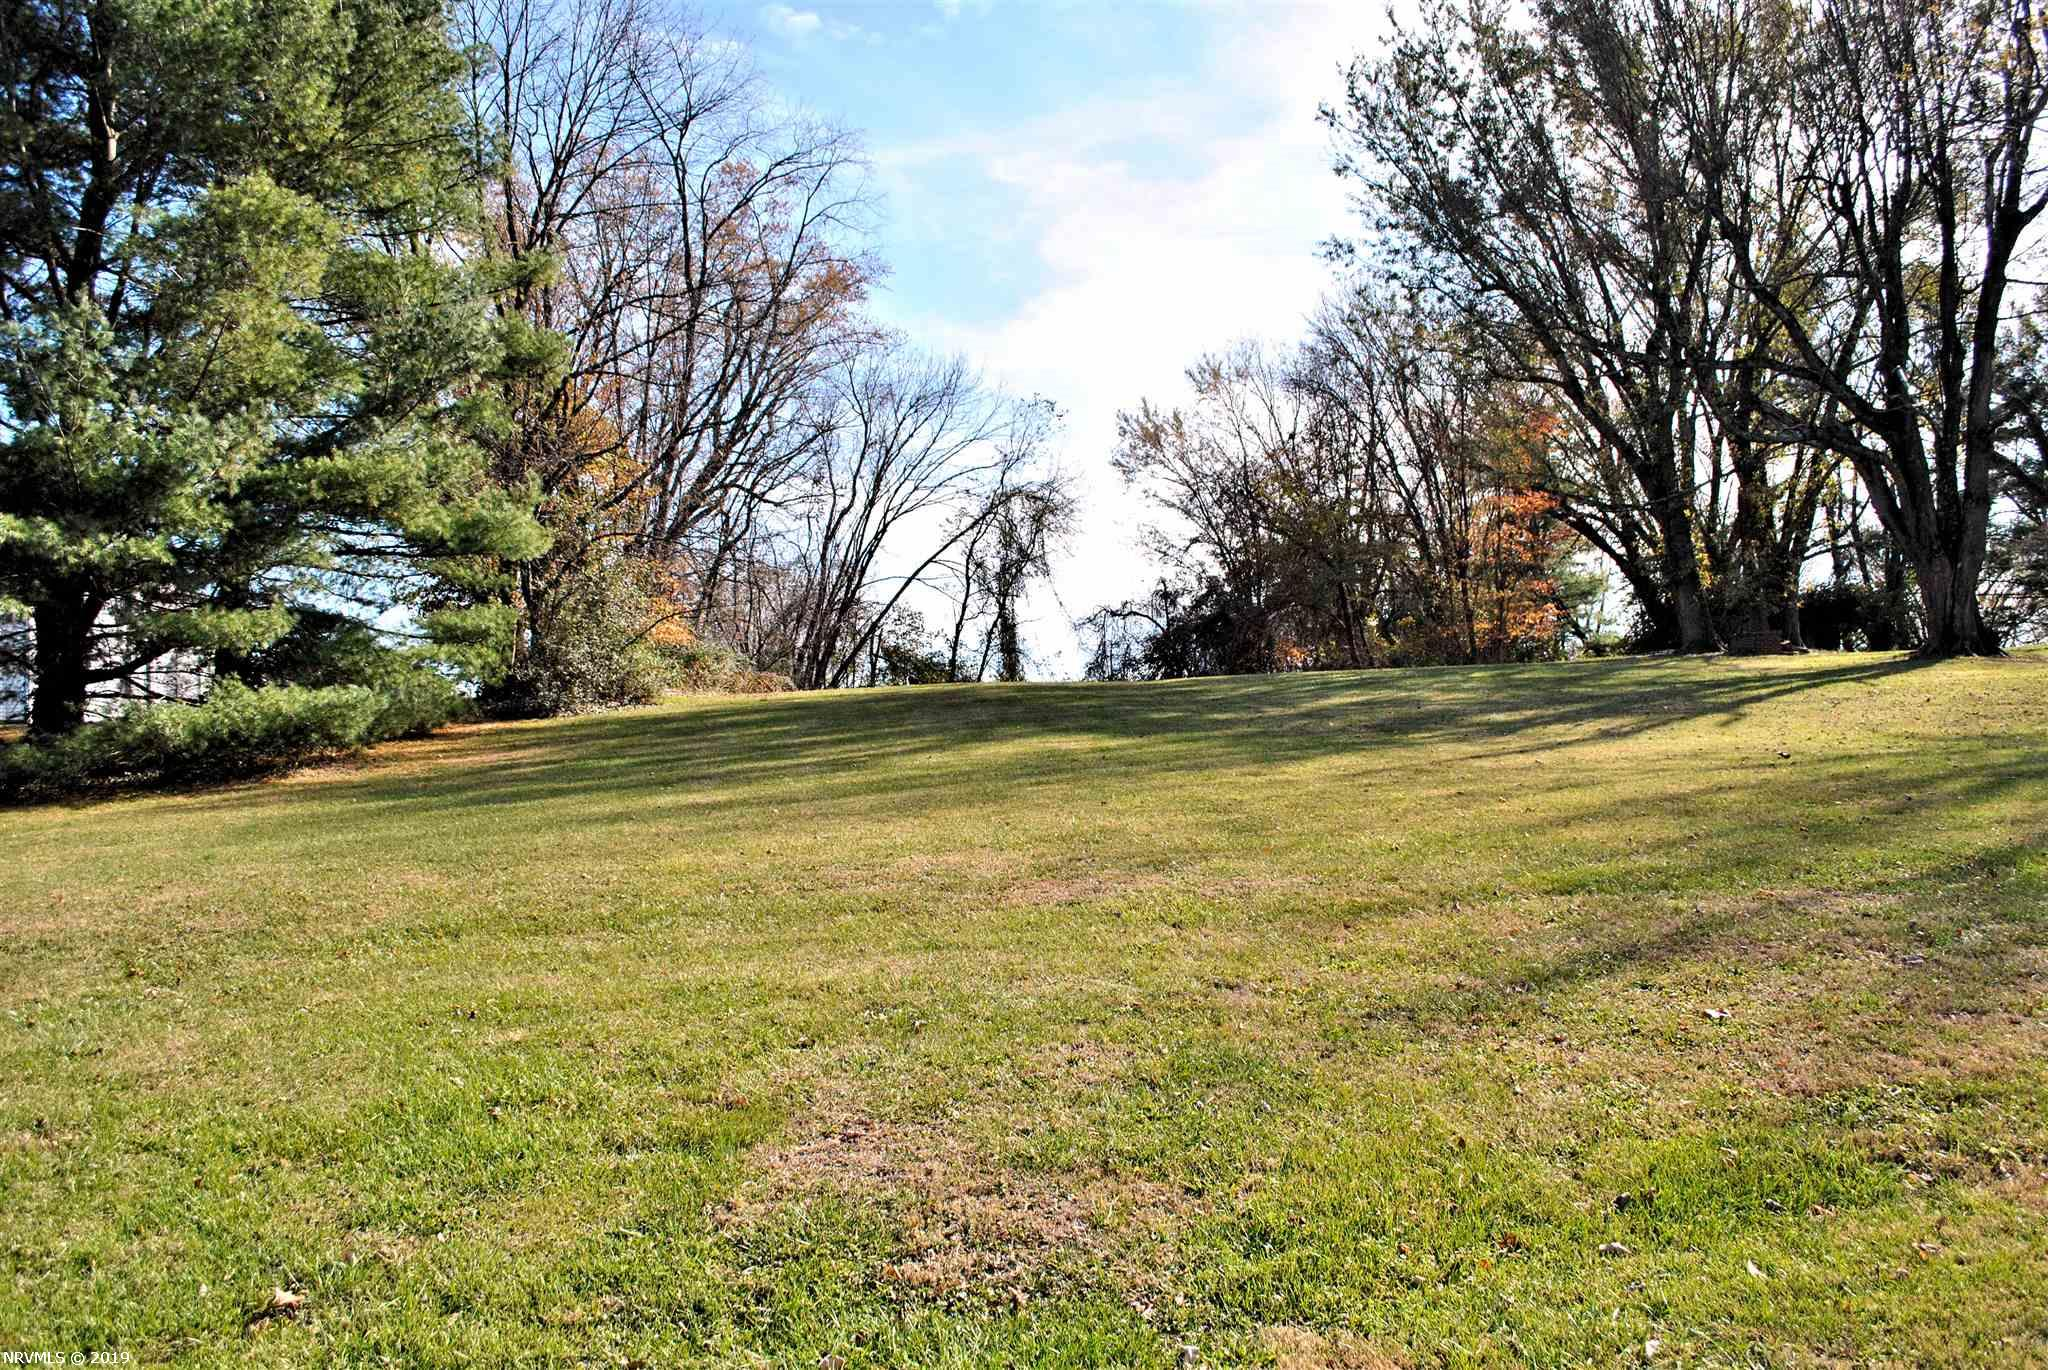 A magnificent 4.68 acre flat, corner lot in Dublin zoned R-3 with lots of development potential with public water, public sewer and natural gas available.  The adjoining 2.738 acres is also available.  Just minutes to Route 100, New River Community College and 30 minute commute to Celanese or a 20 minute commute to Radford University.